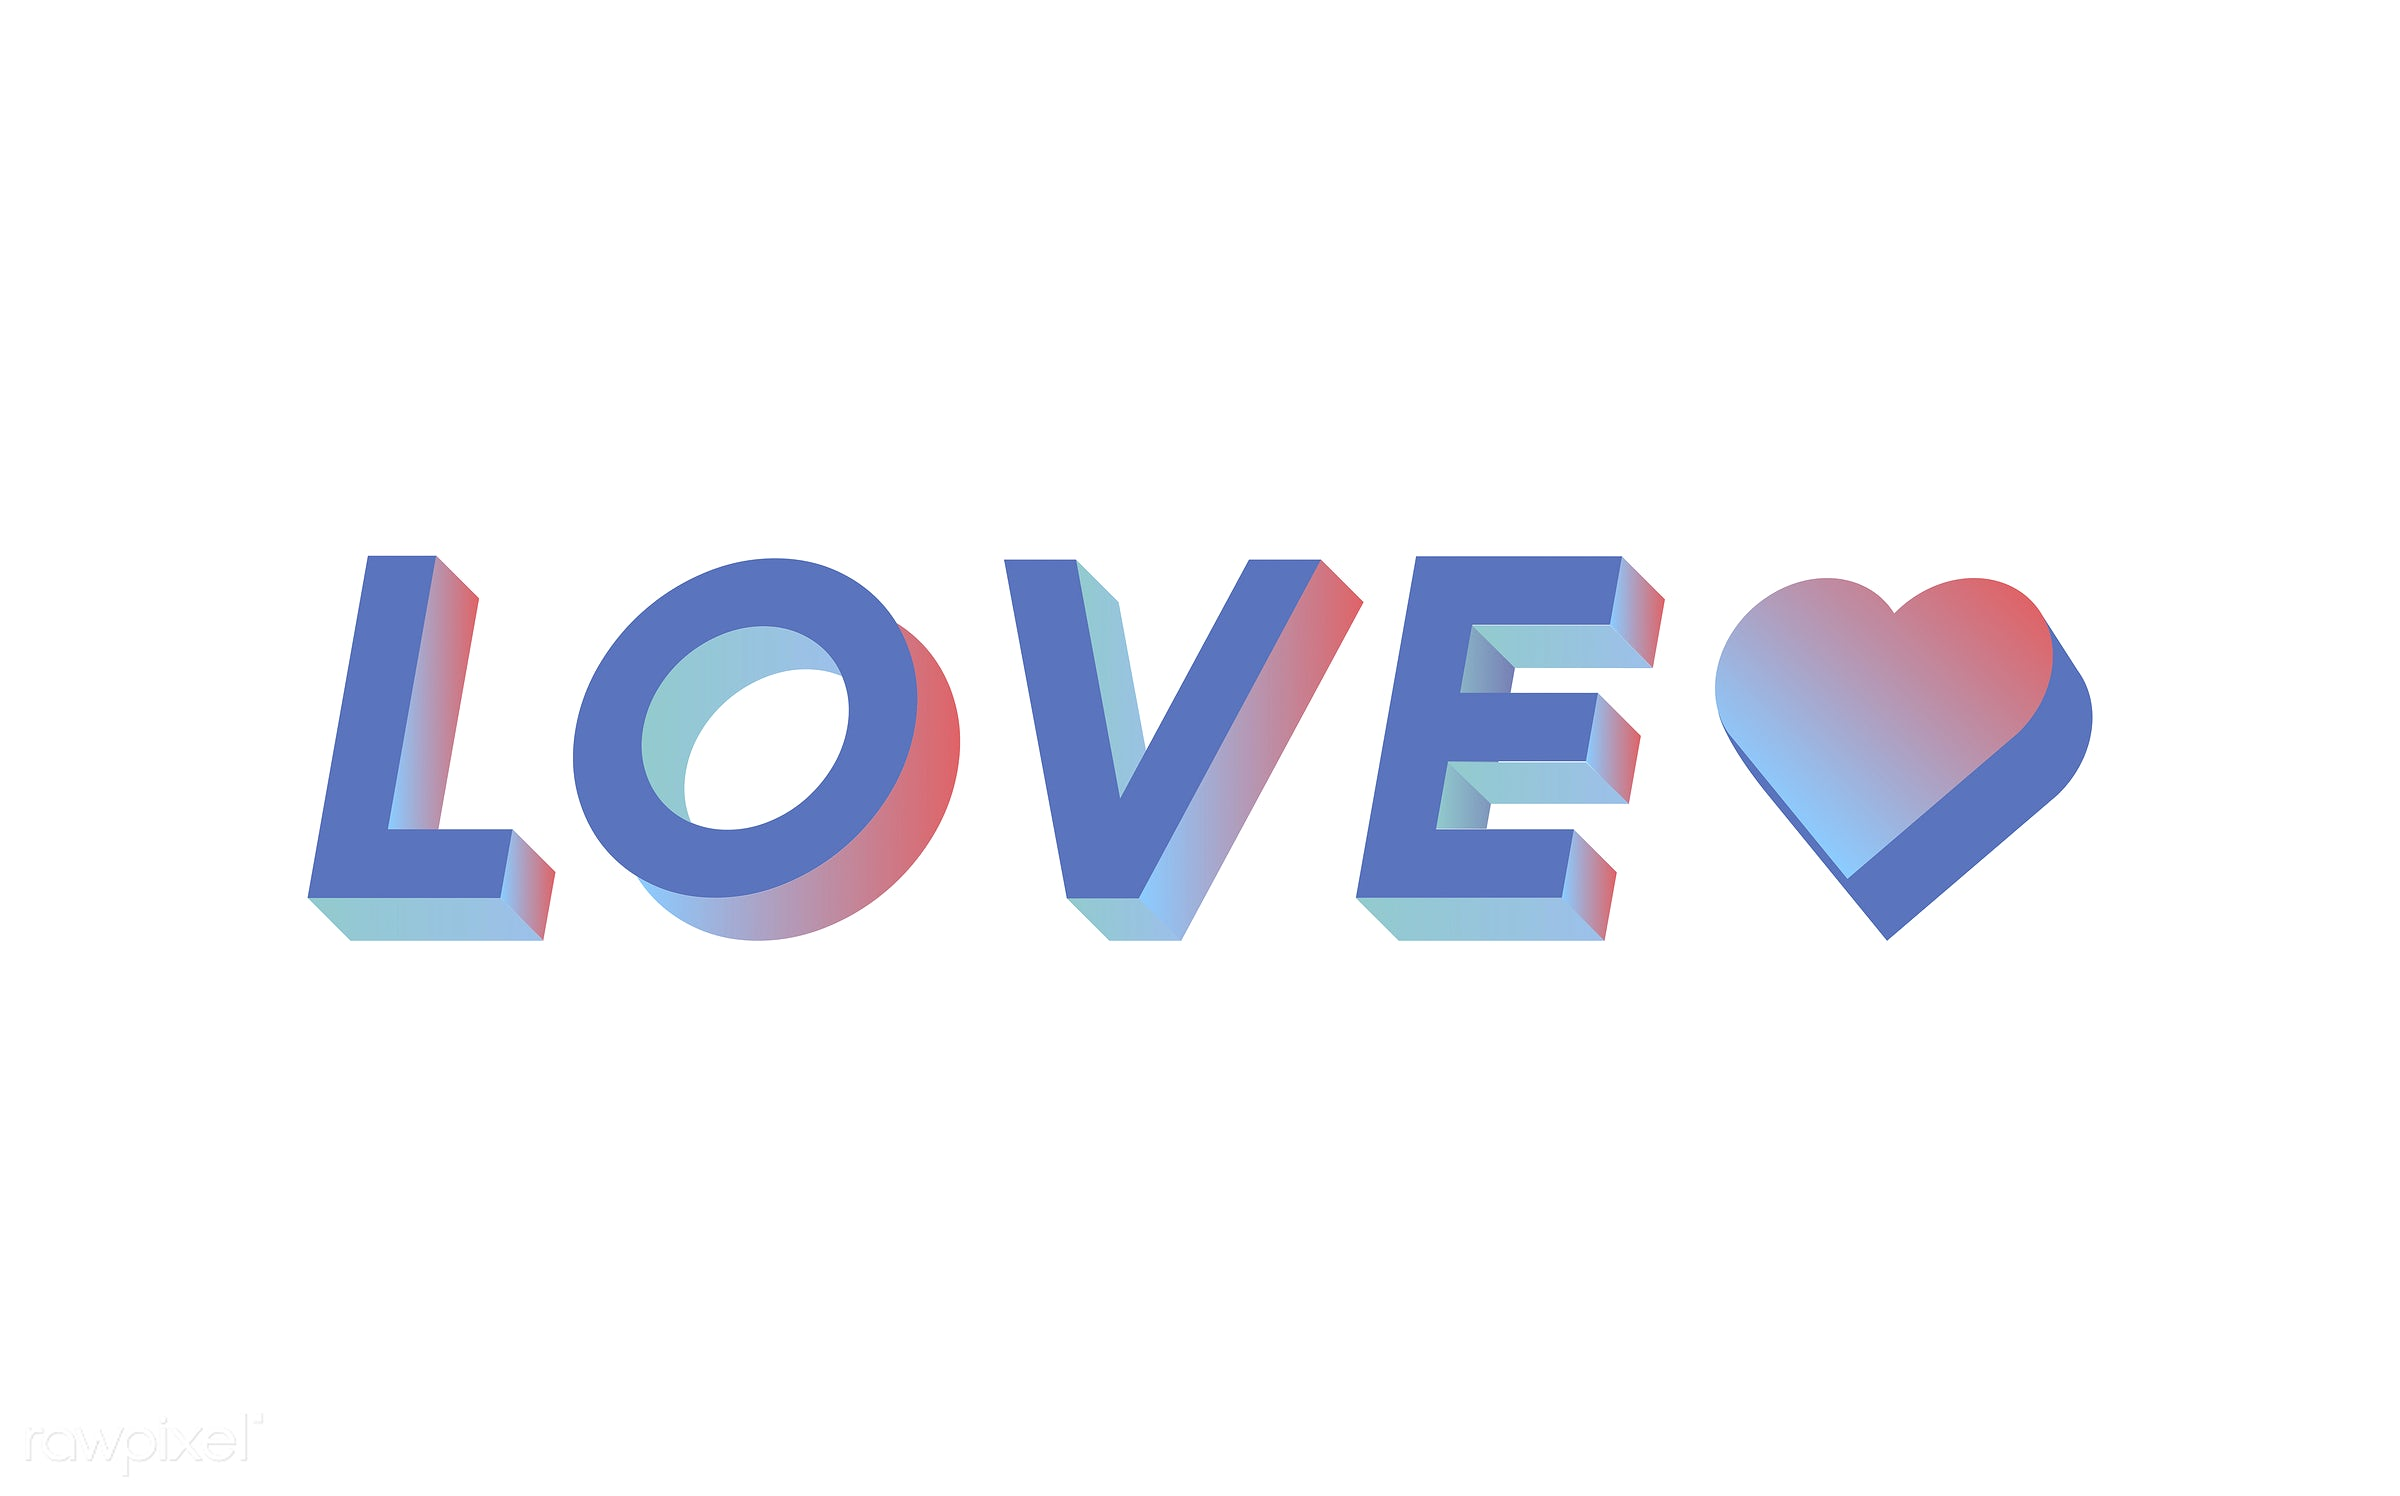 3d, blue, colorful, graphic, illustration, in love, love, neon, romance, three dimensional, valentines day, vector, white,...